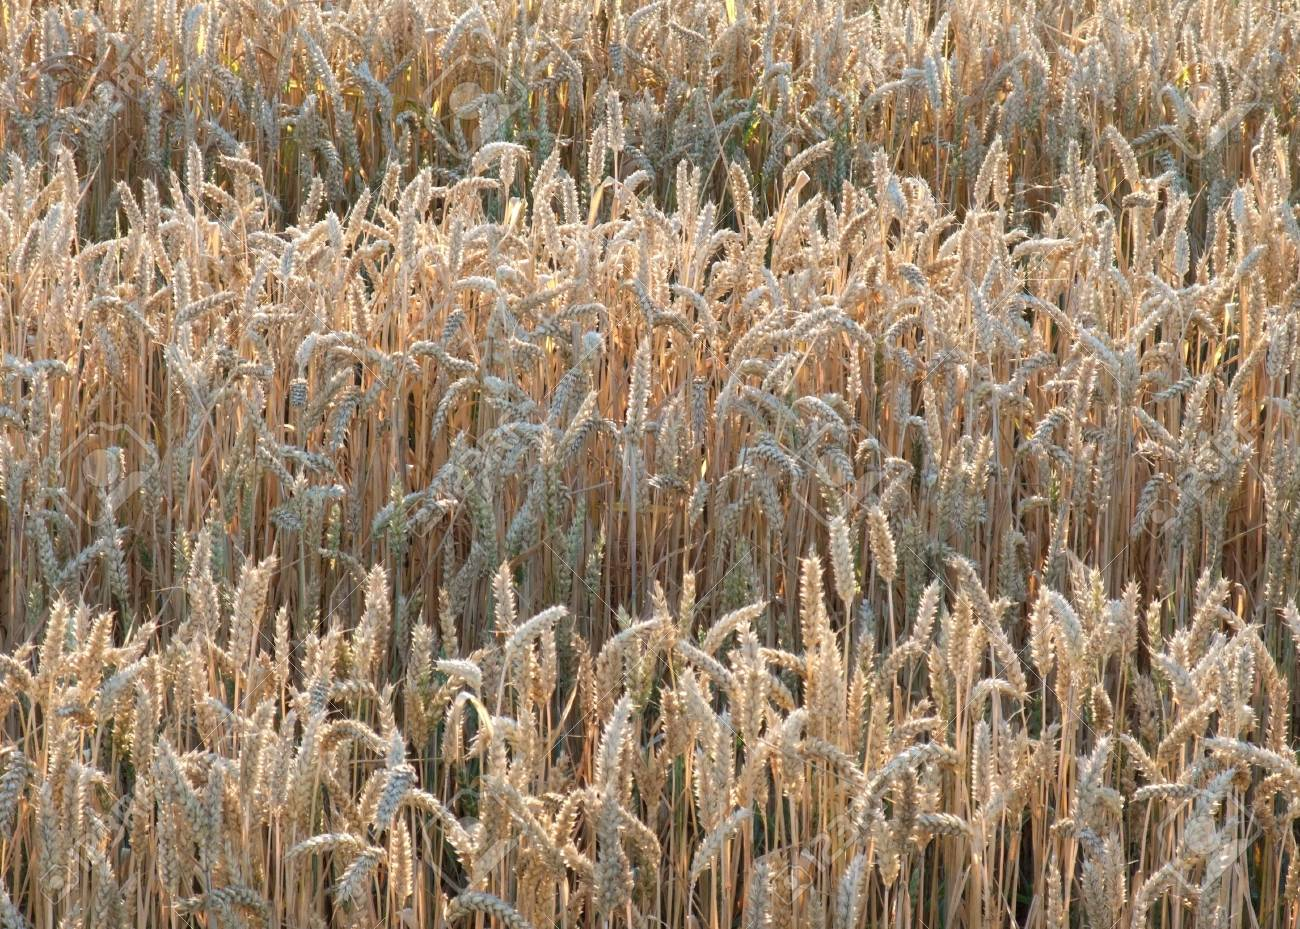 Full Frame Detail Showing Rows In A Wheat Field At Evening Time ...